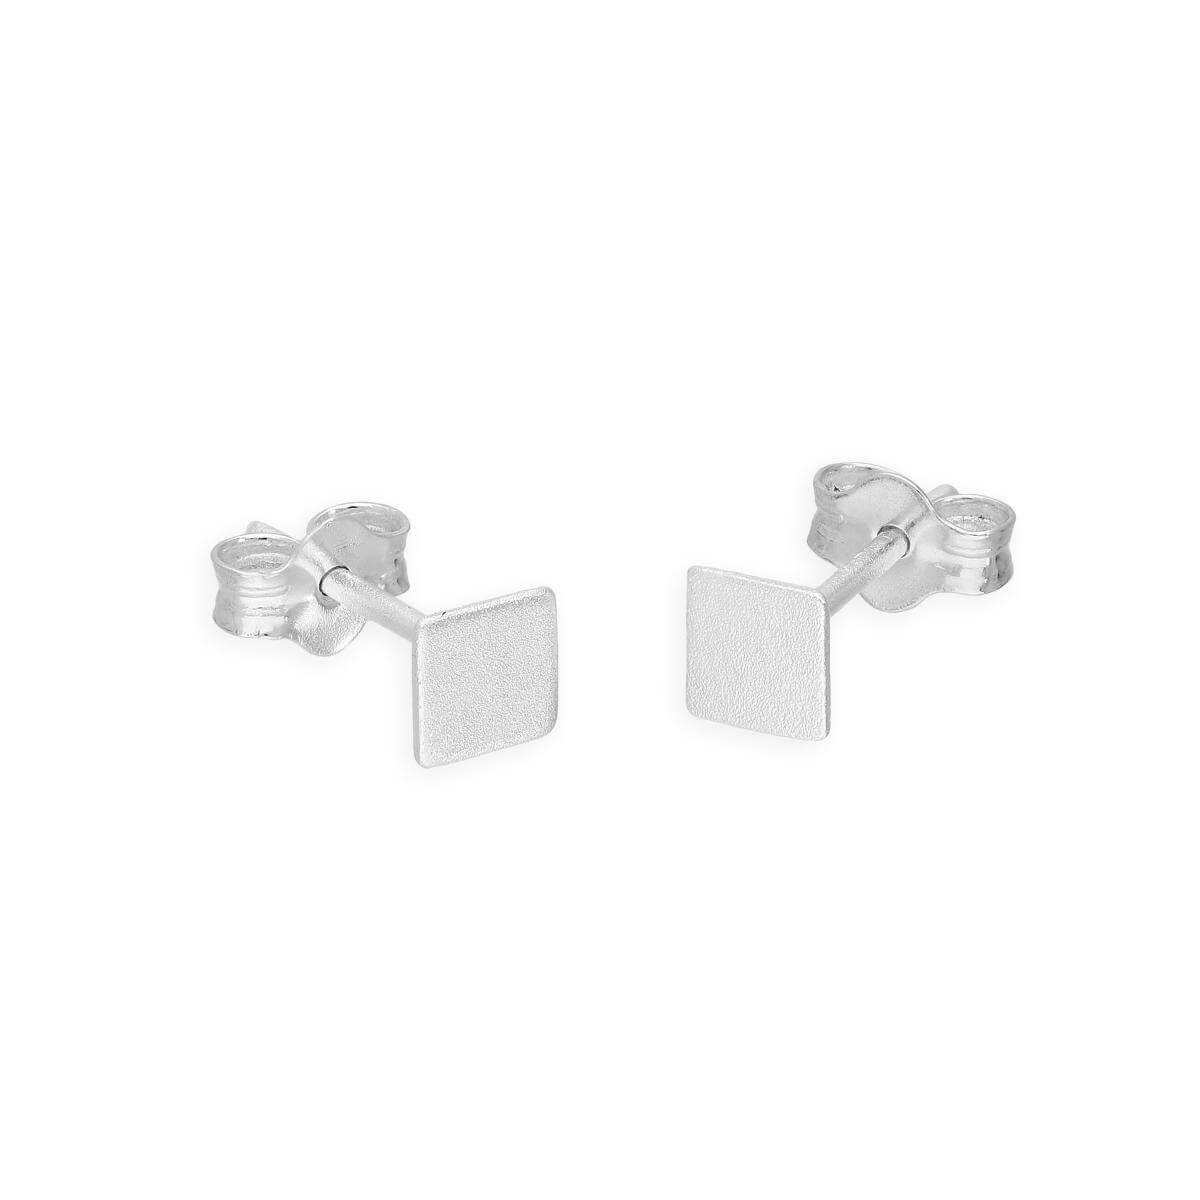 Small Sterling Silver 4mm Square Stud Earrings